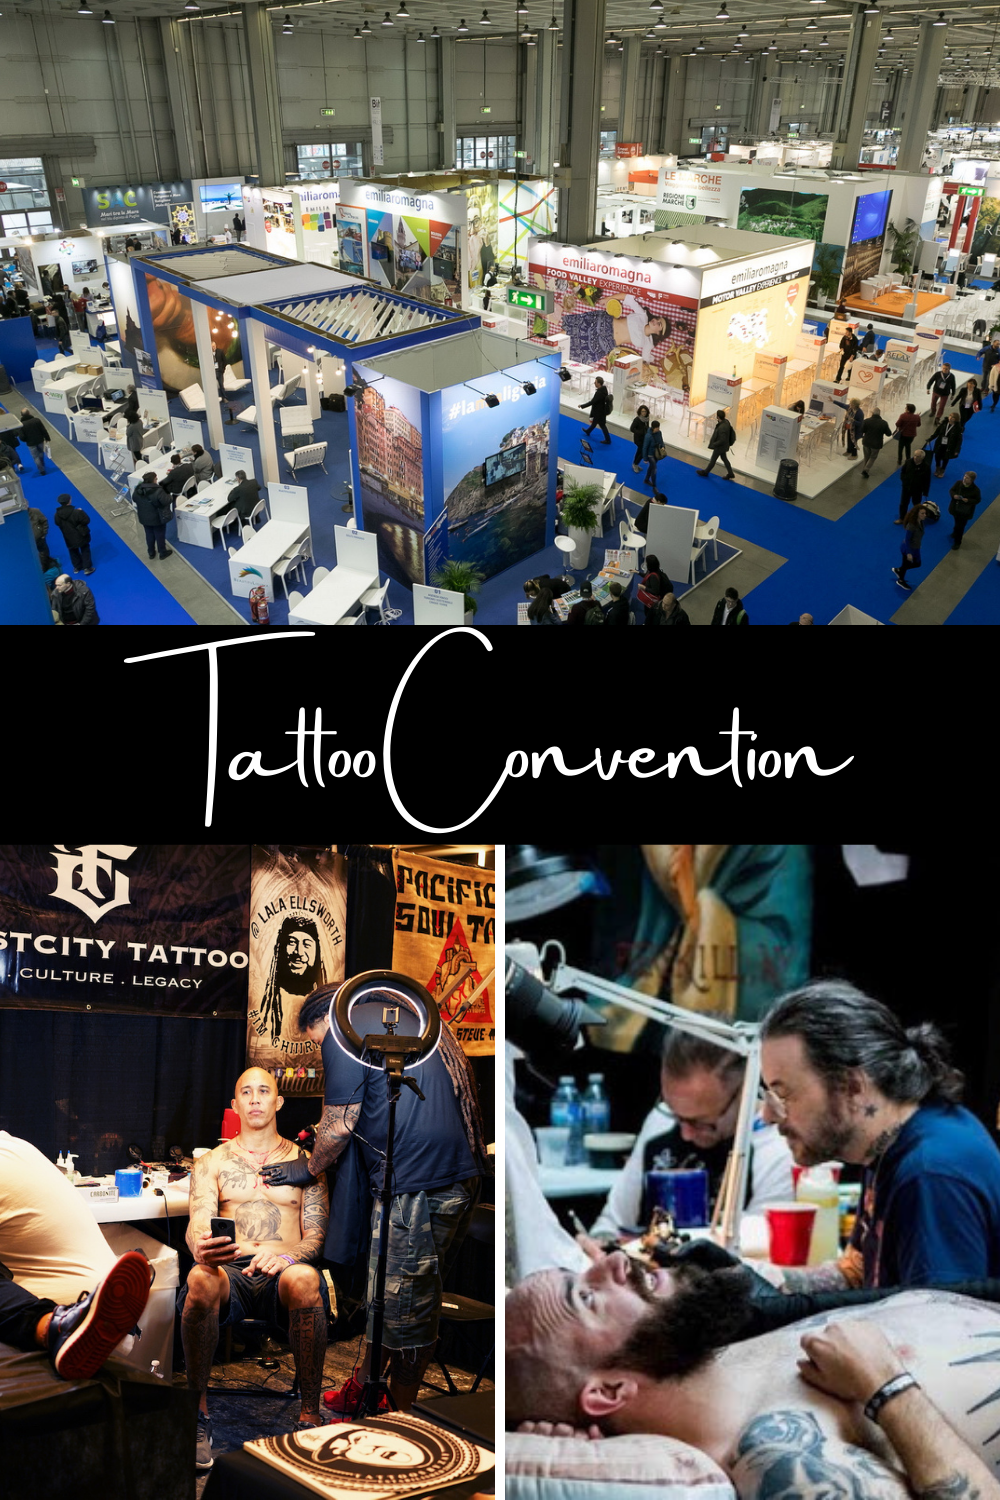 What is a Tattoo Convention & why should I go?